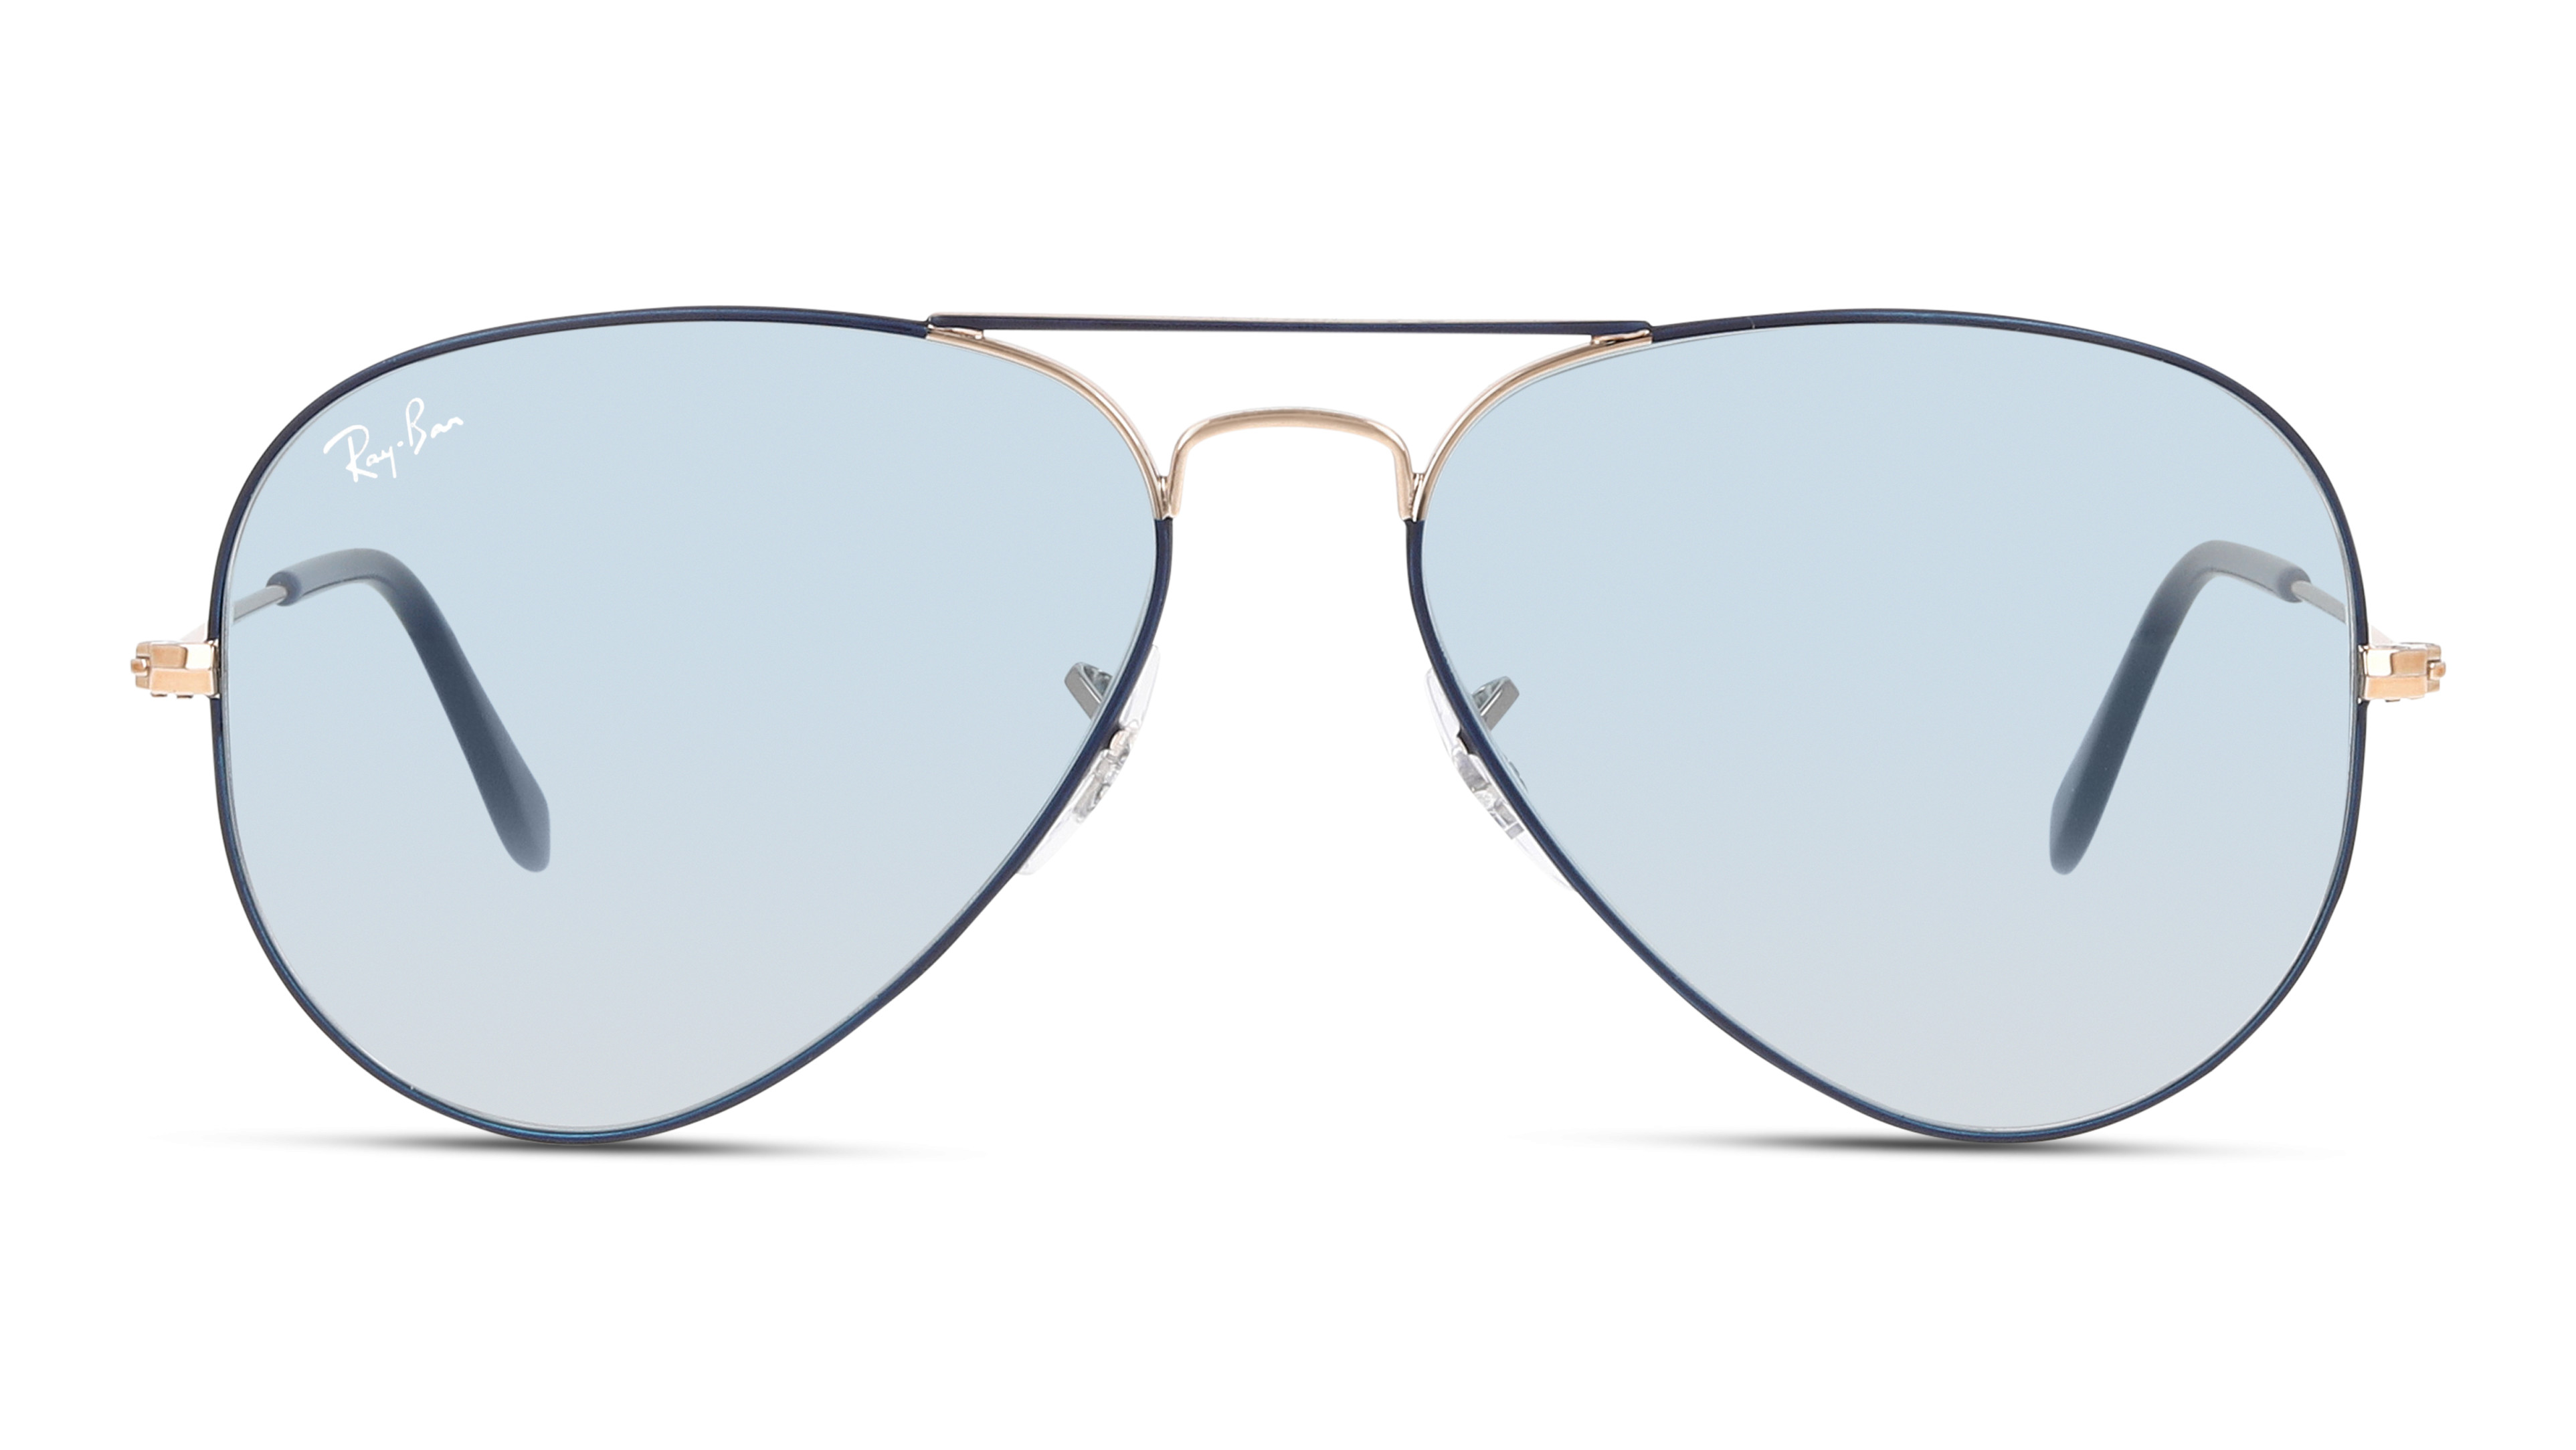 8056597044509-front-01-ray-ban-0rb3025-eyewear-copper-on-matte-dark-blue